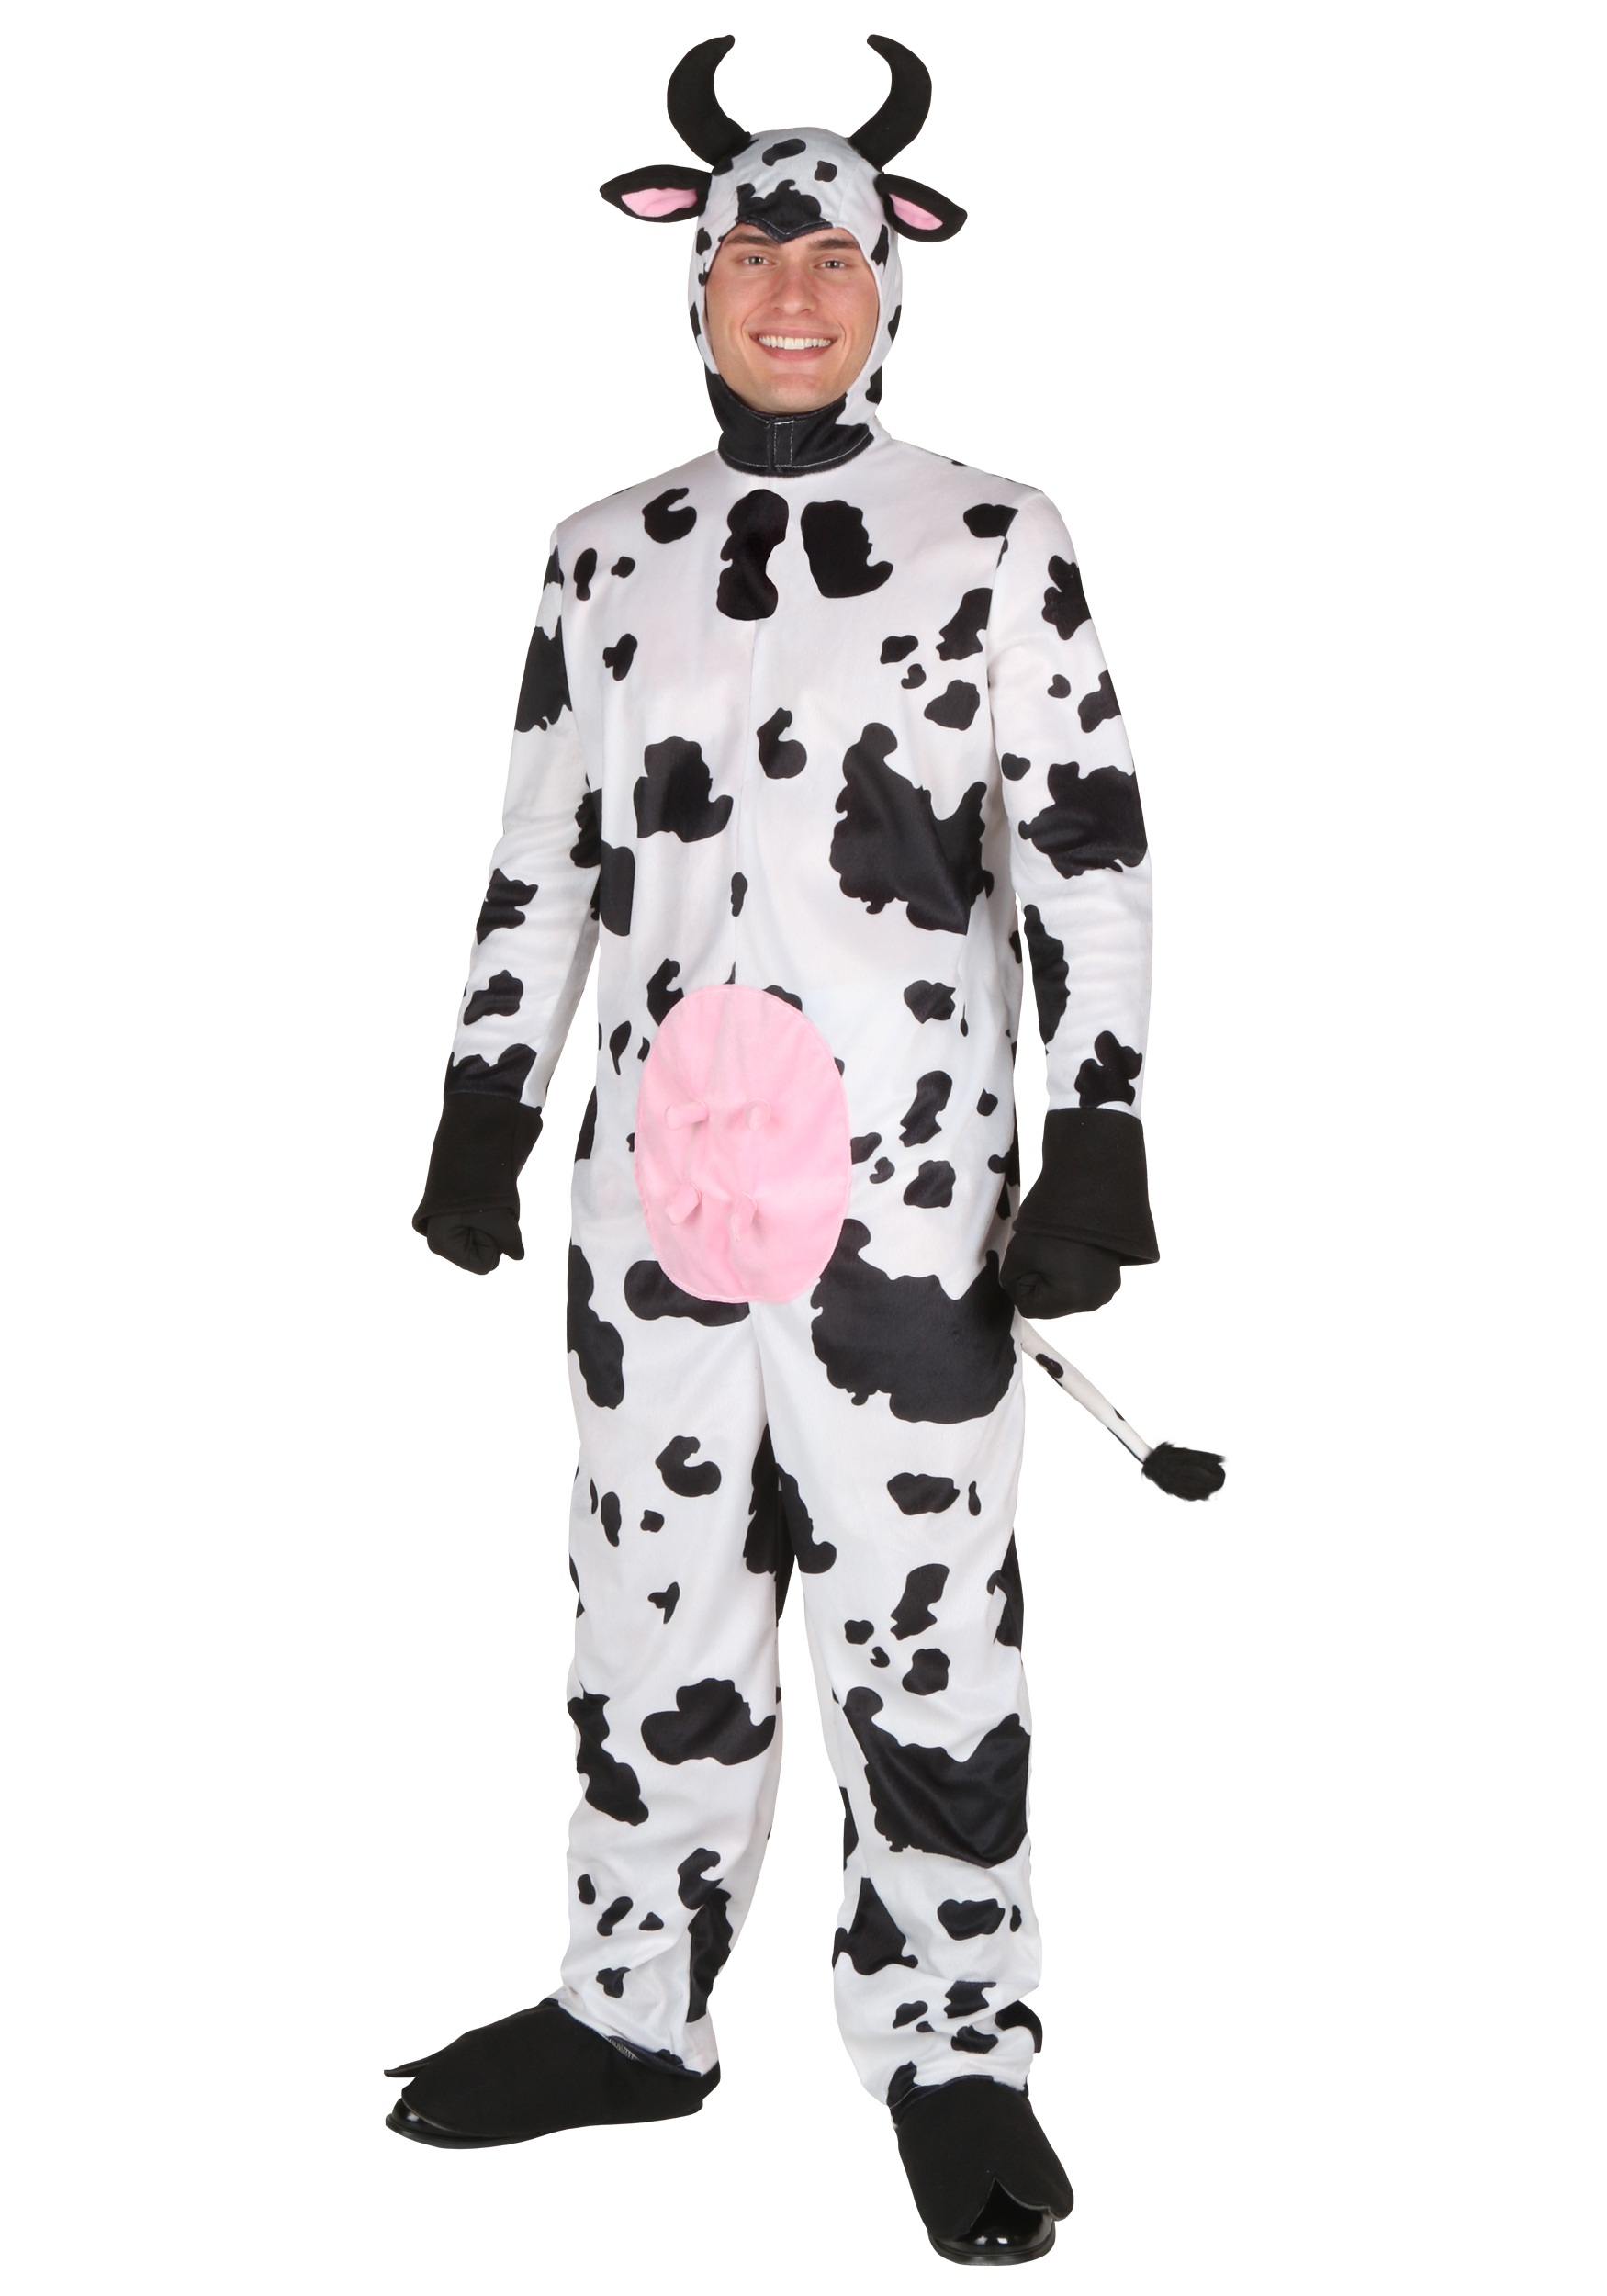 Plus Size Deluxe Cow Costume for Adults